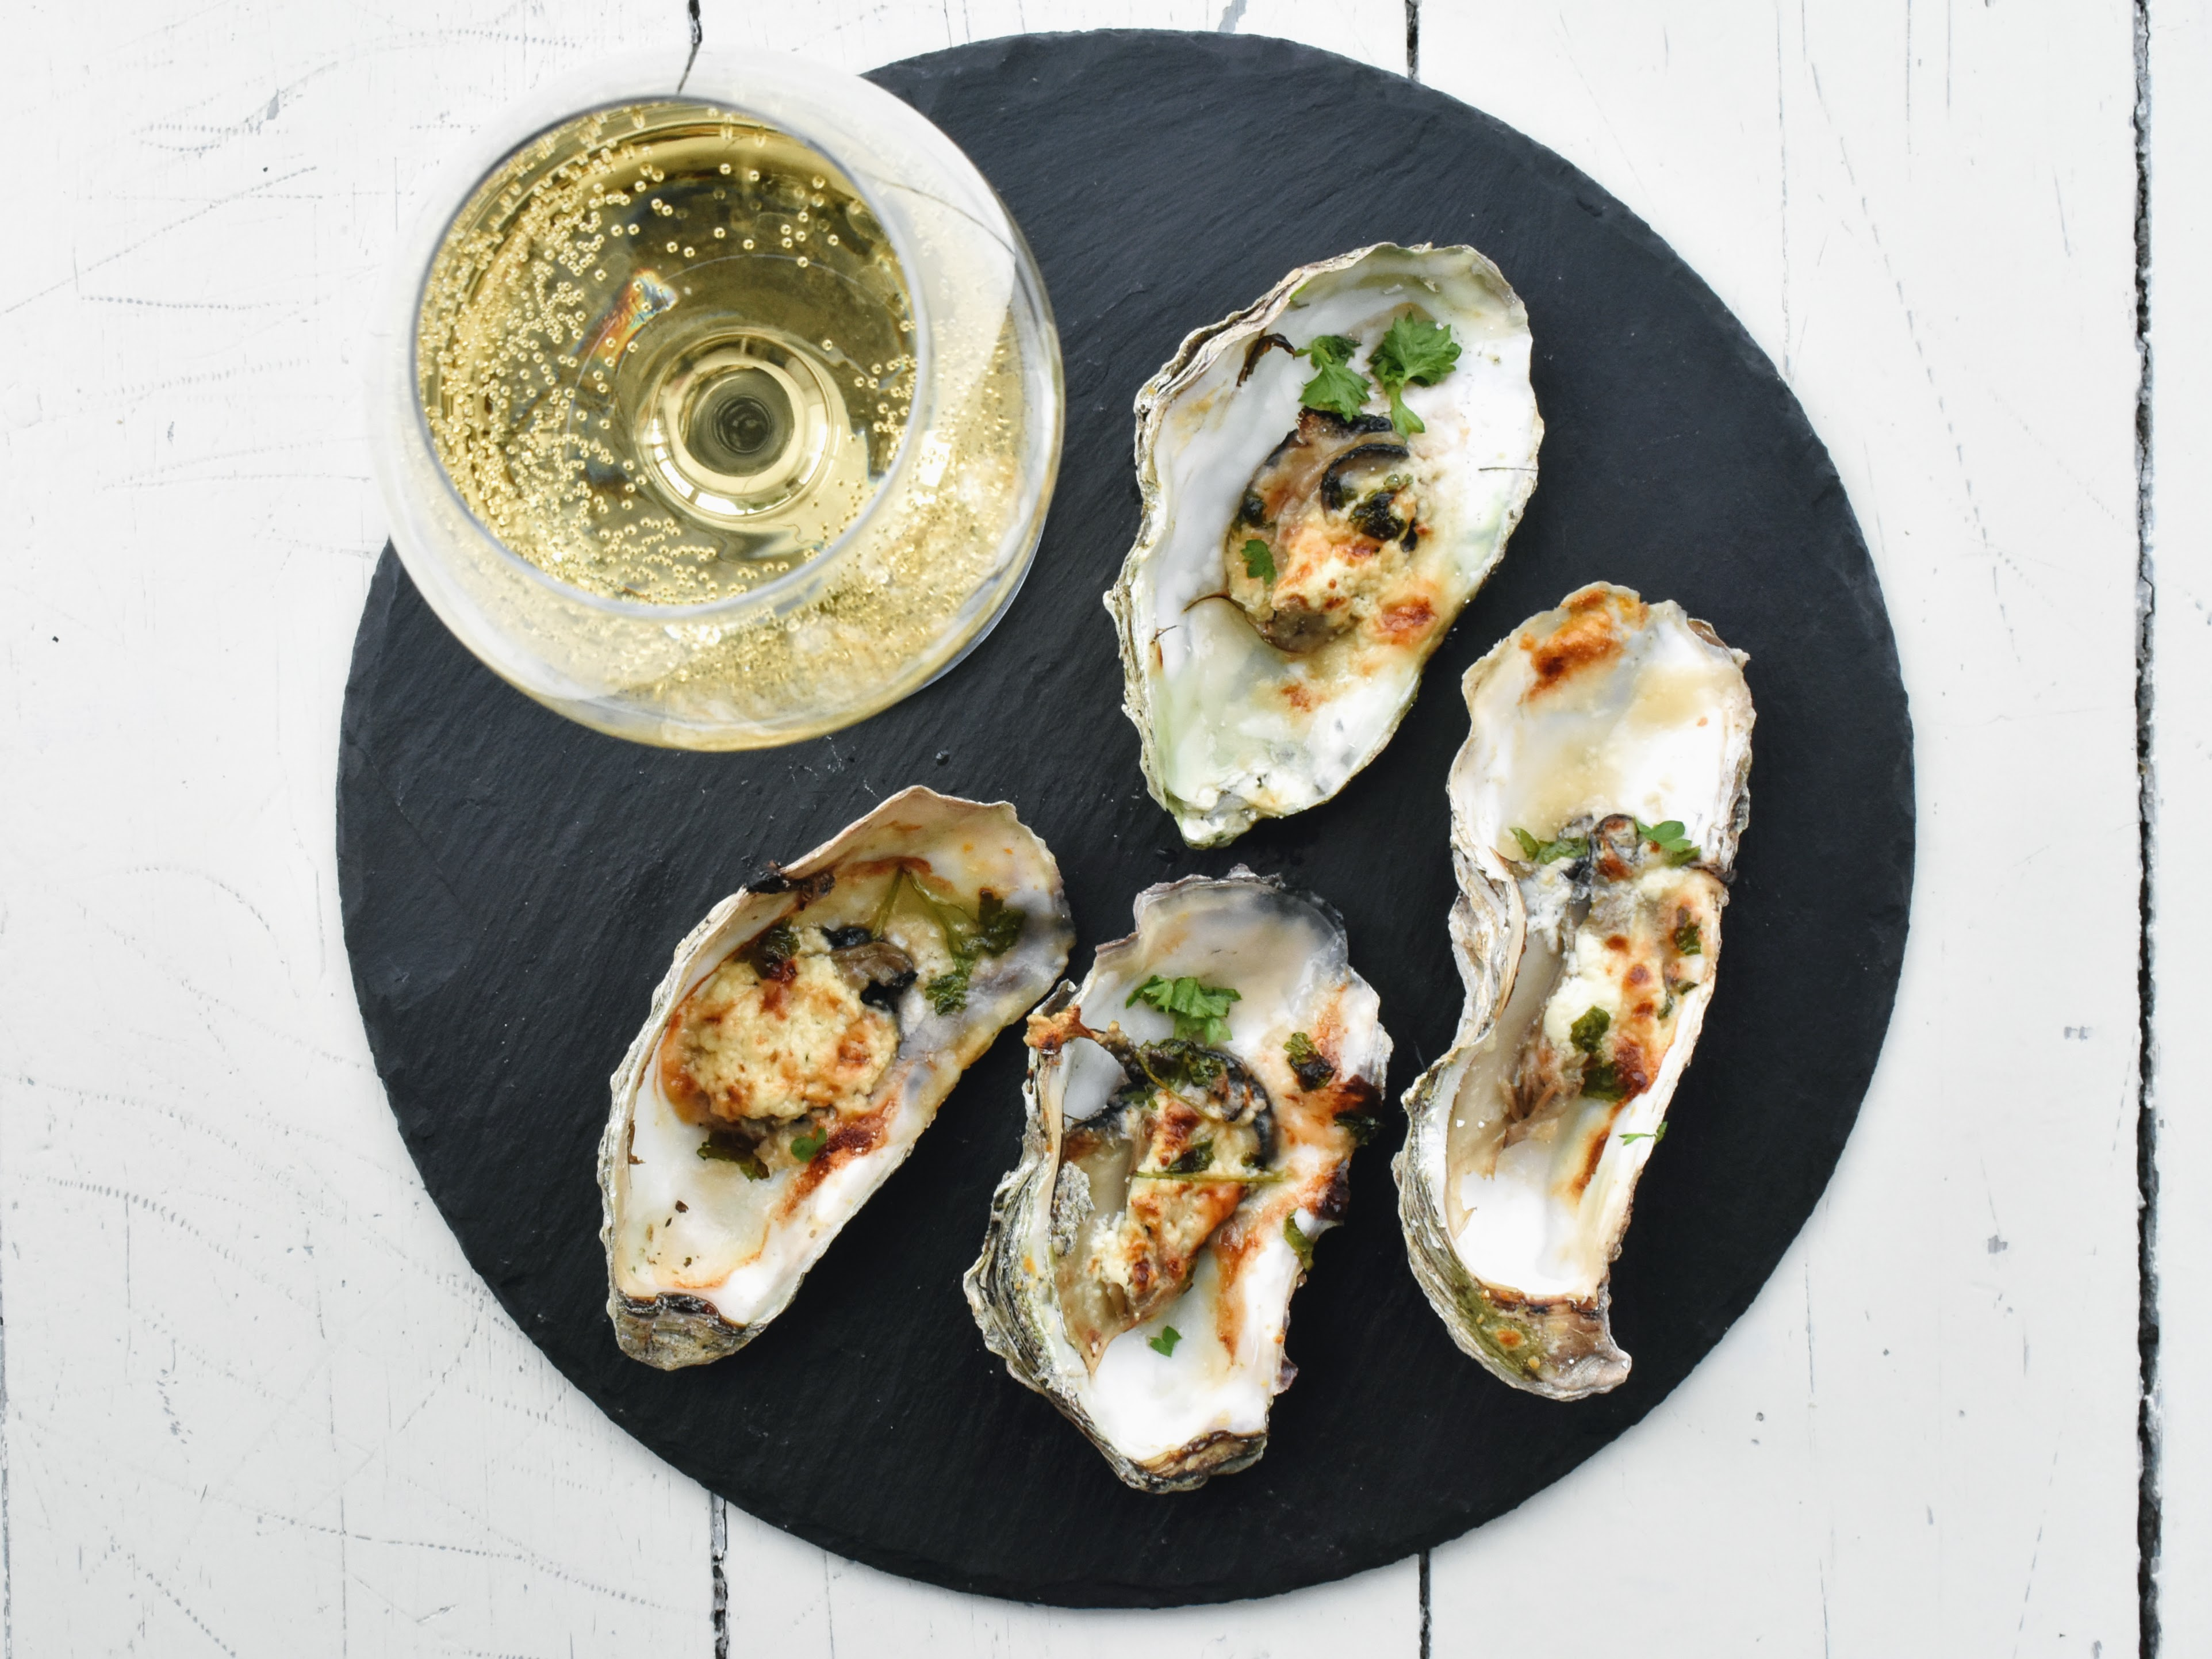 Quickly Baked Giga Oysters from Limfjord (Denmark)